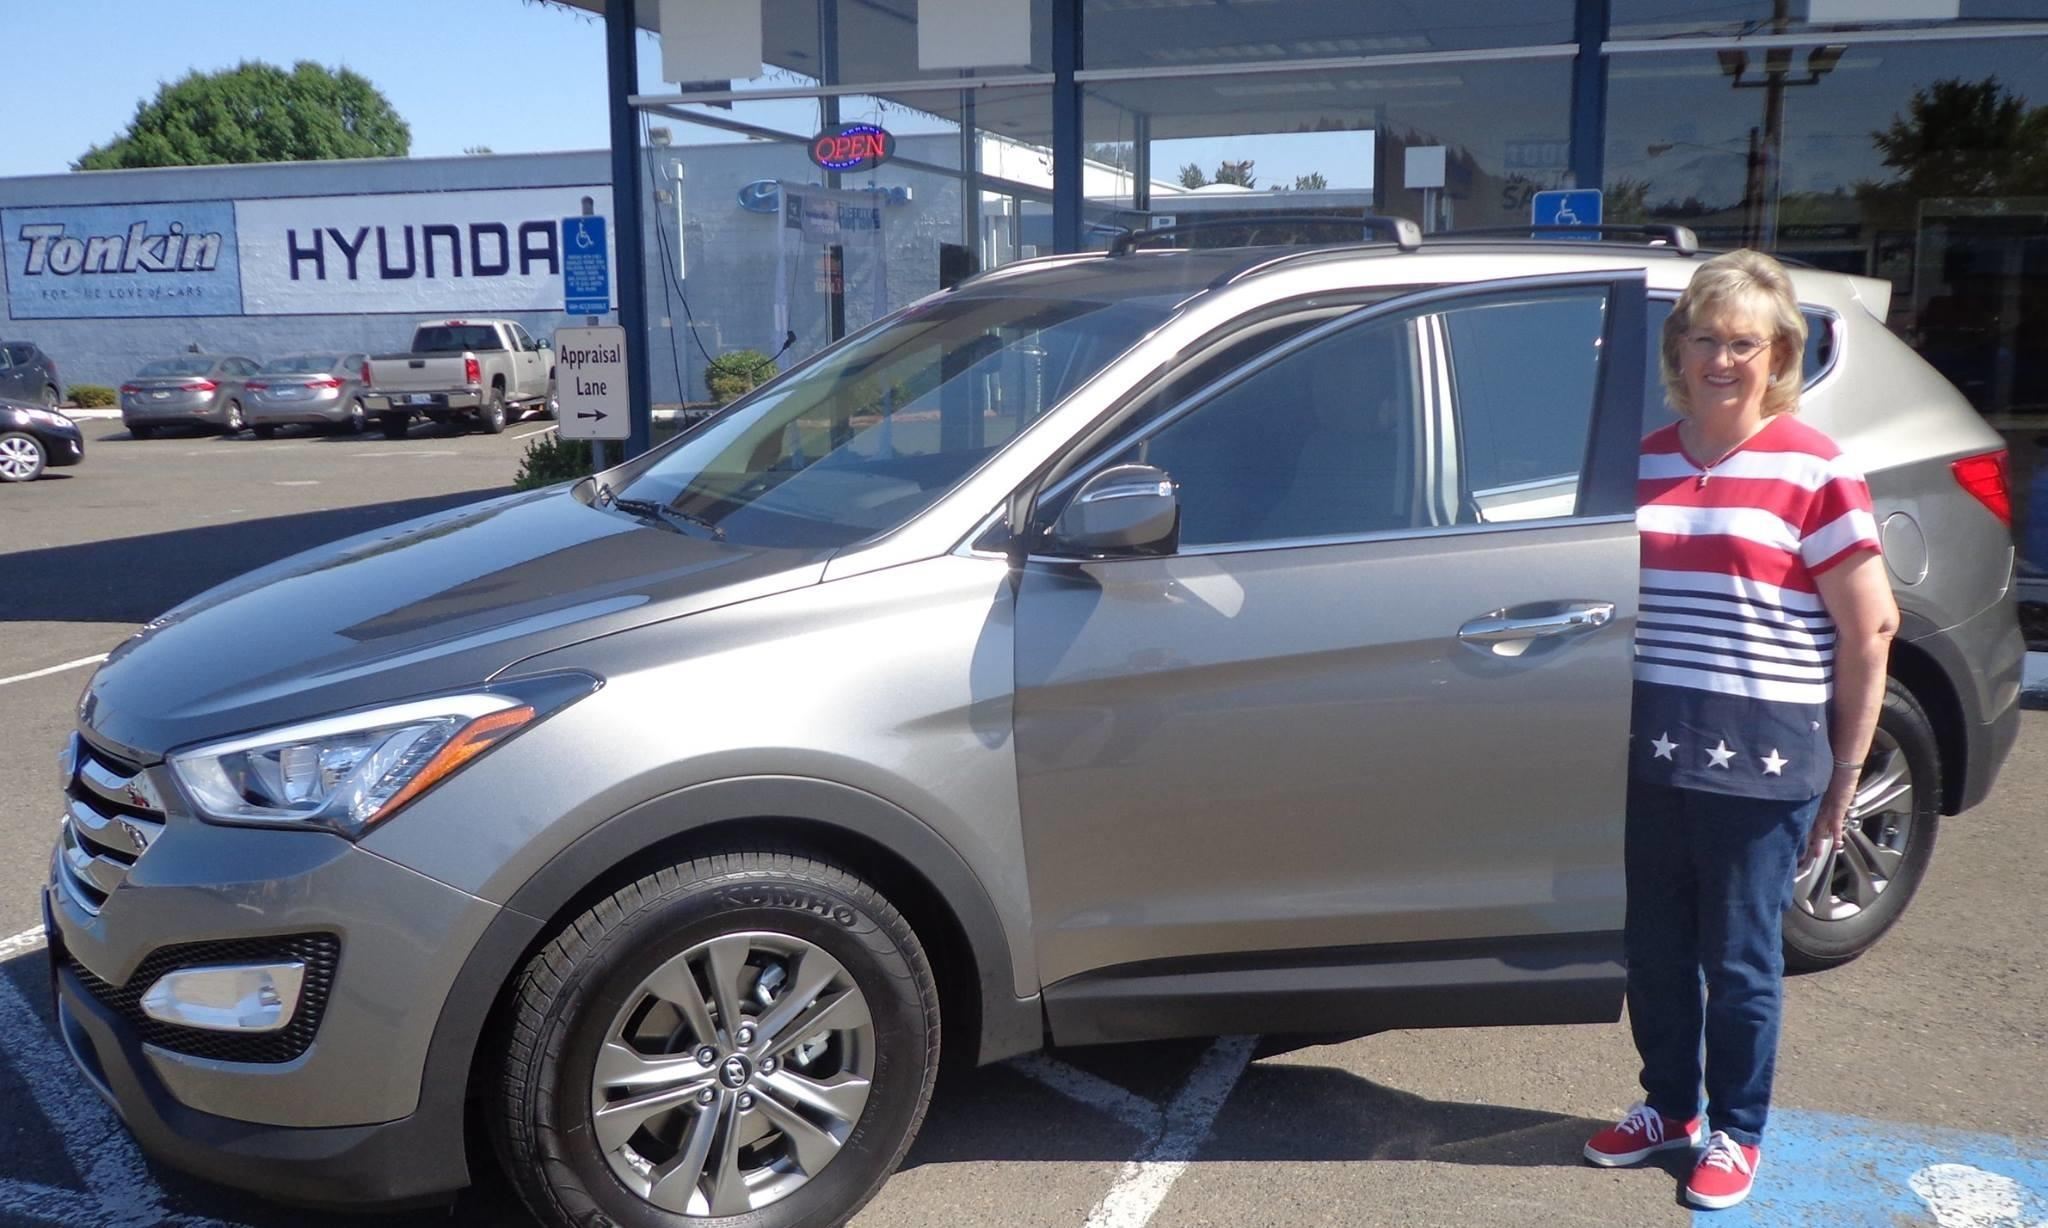 Ron tonkin hyundai in gresham or 97030 for Gresham honda service